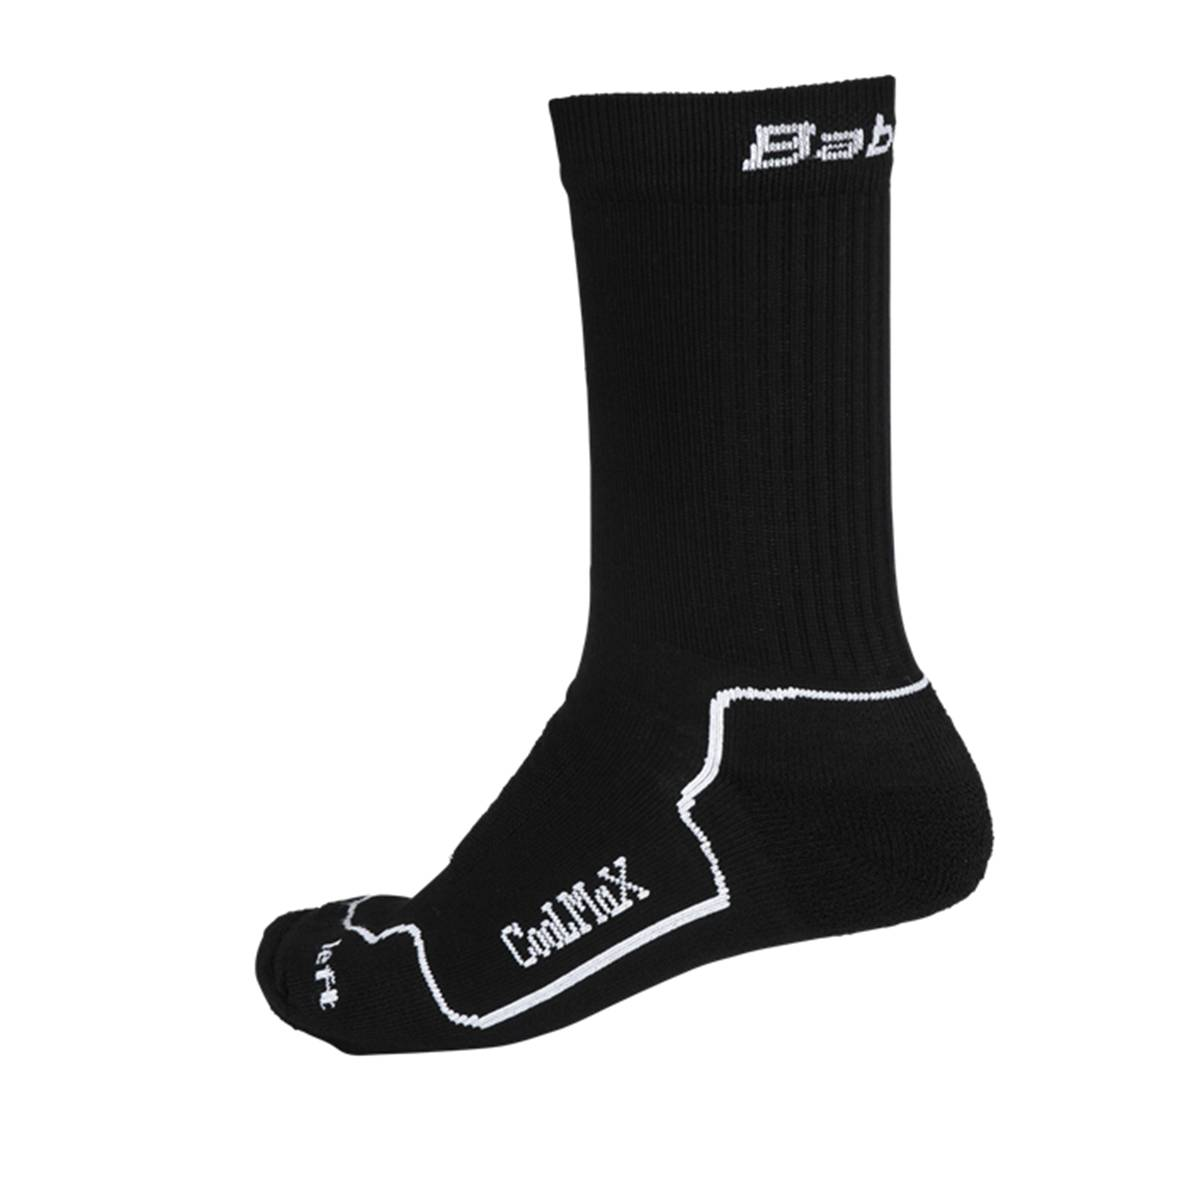 Babolat Team Sock 1-pack Black 35-38